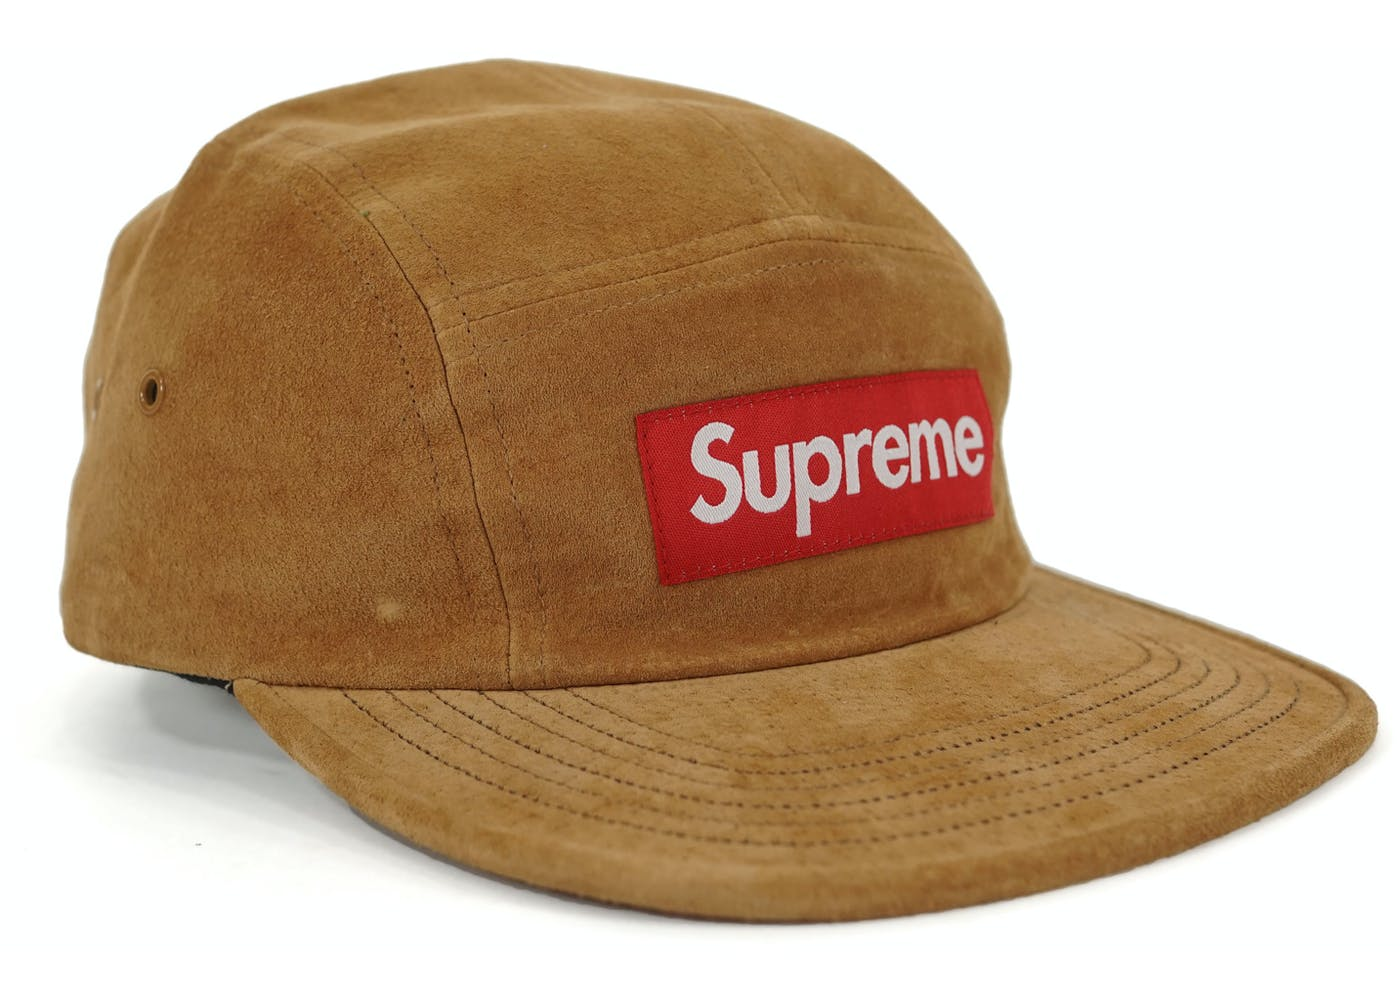 ... best selling cbd15 e09d5 Streetwear - Buy Sell Top Brands on StockX   available 037f8 b960d Supreme camp cap ... 1a98f277e2ed